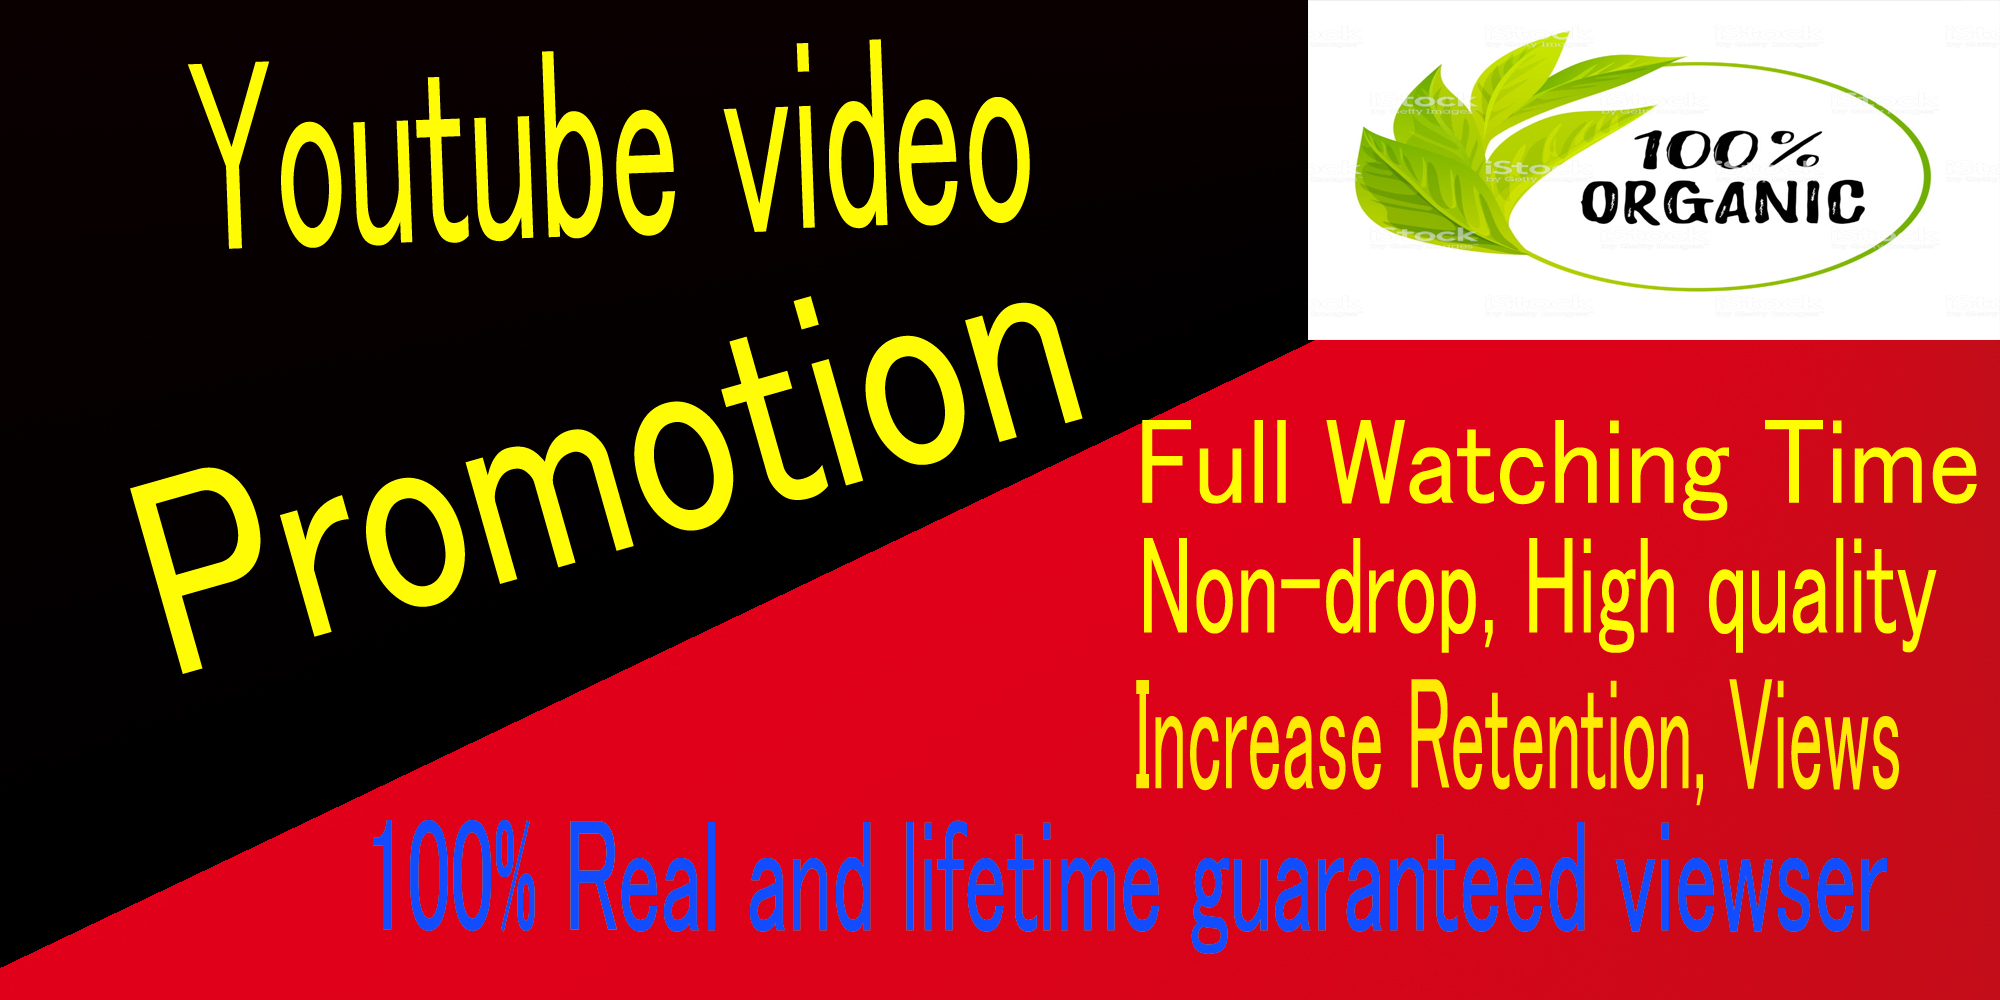 Real Instant,HQ,Non-drop,Youtube video Music promotion with Seo Ranking,monetization marketing